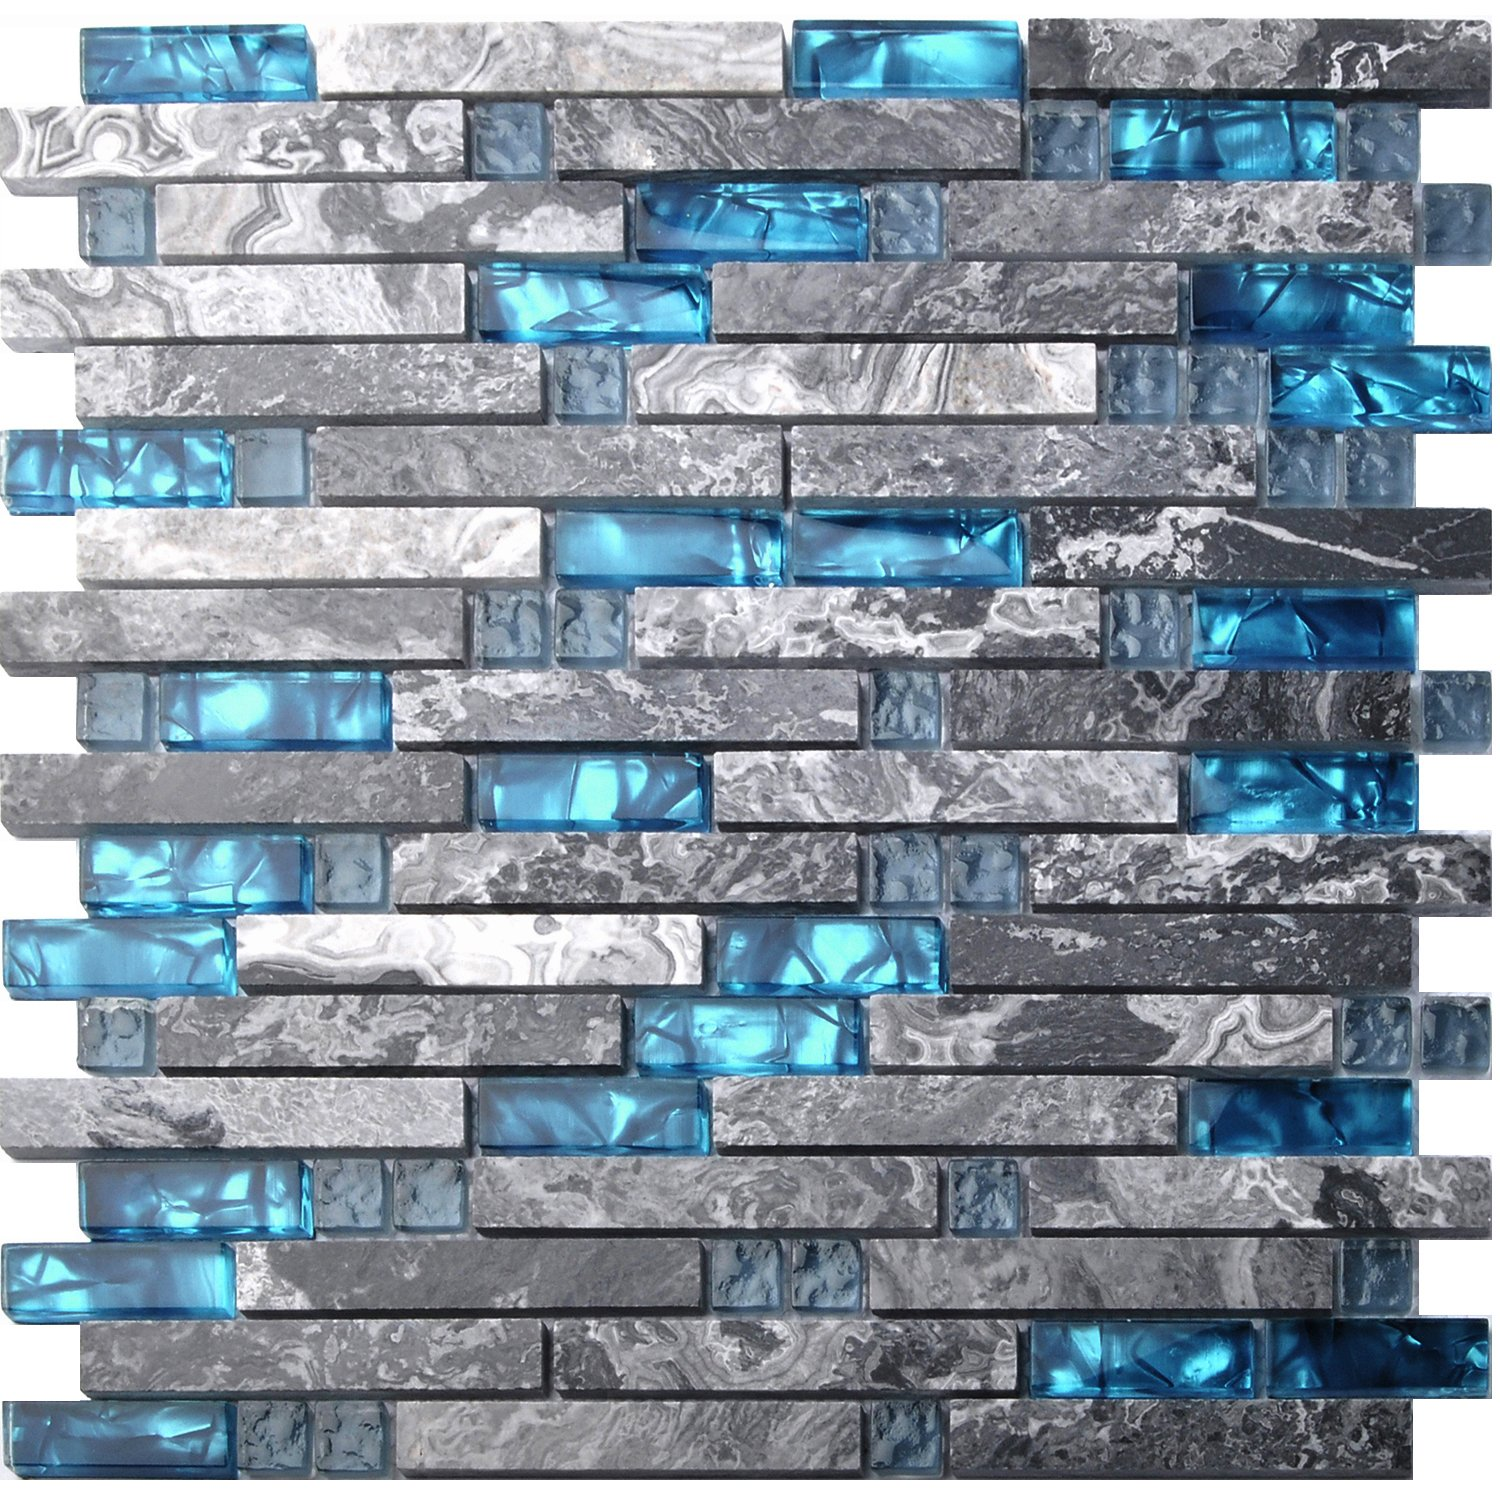 Home Building Glass Tile Kitchen Backsplash Idea Bath Shower Wall Decor Teal Blue Gray Wave Marble Interlocking Pattern Art Mosaics TSTMGT002 (5 PCS [12'' X 12''/each]) by TST MOSAIC TILES